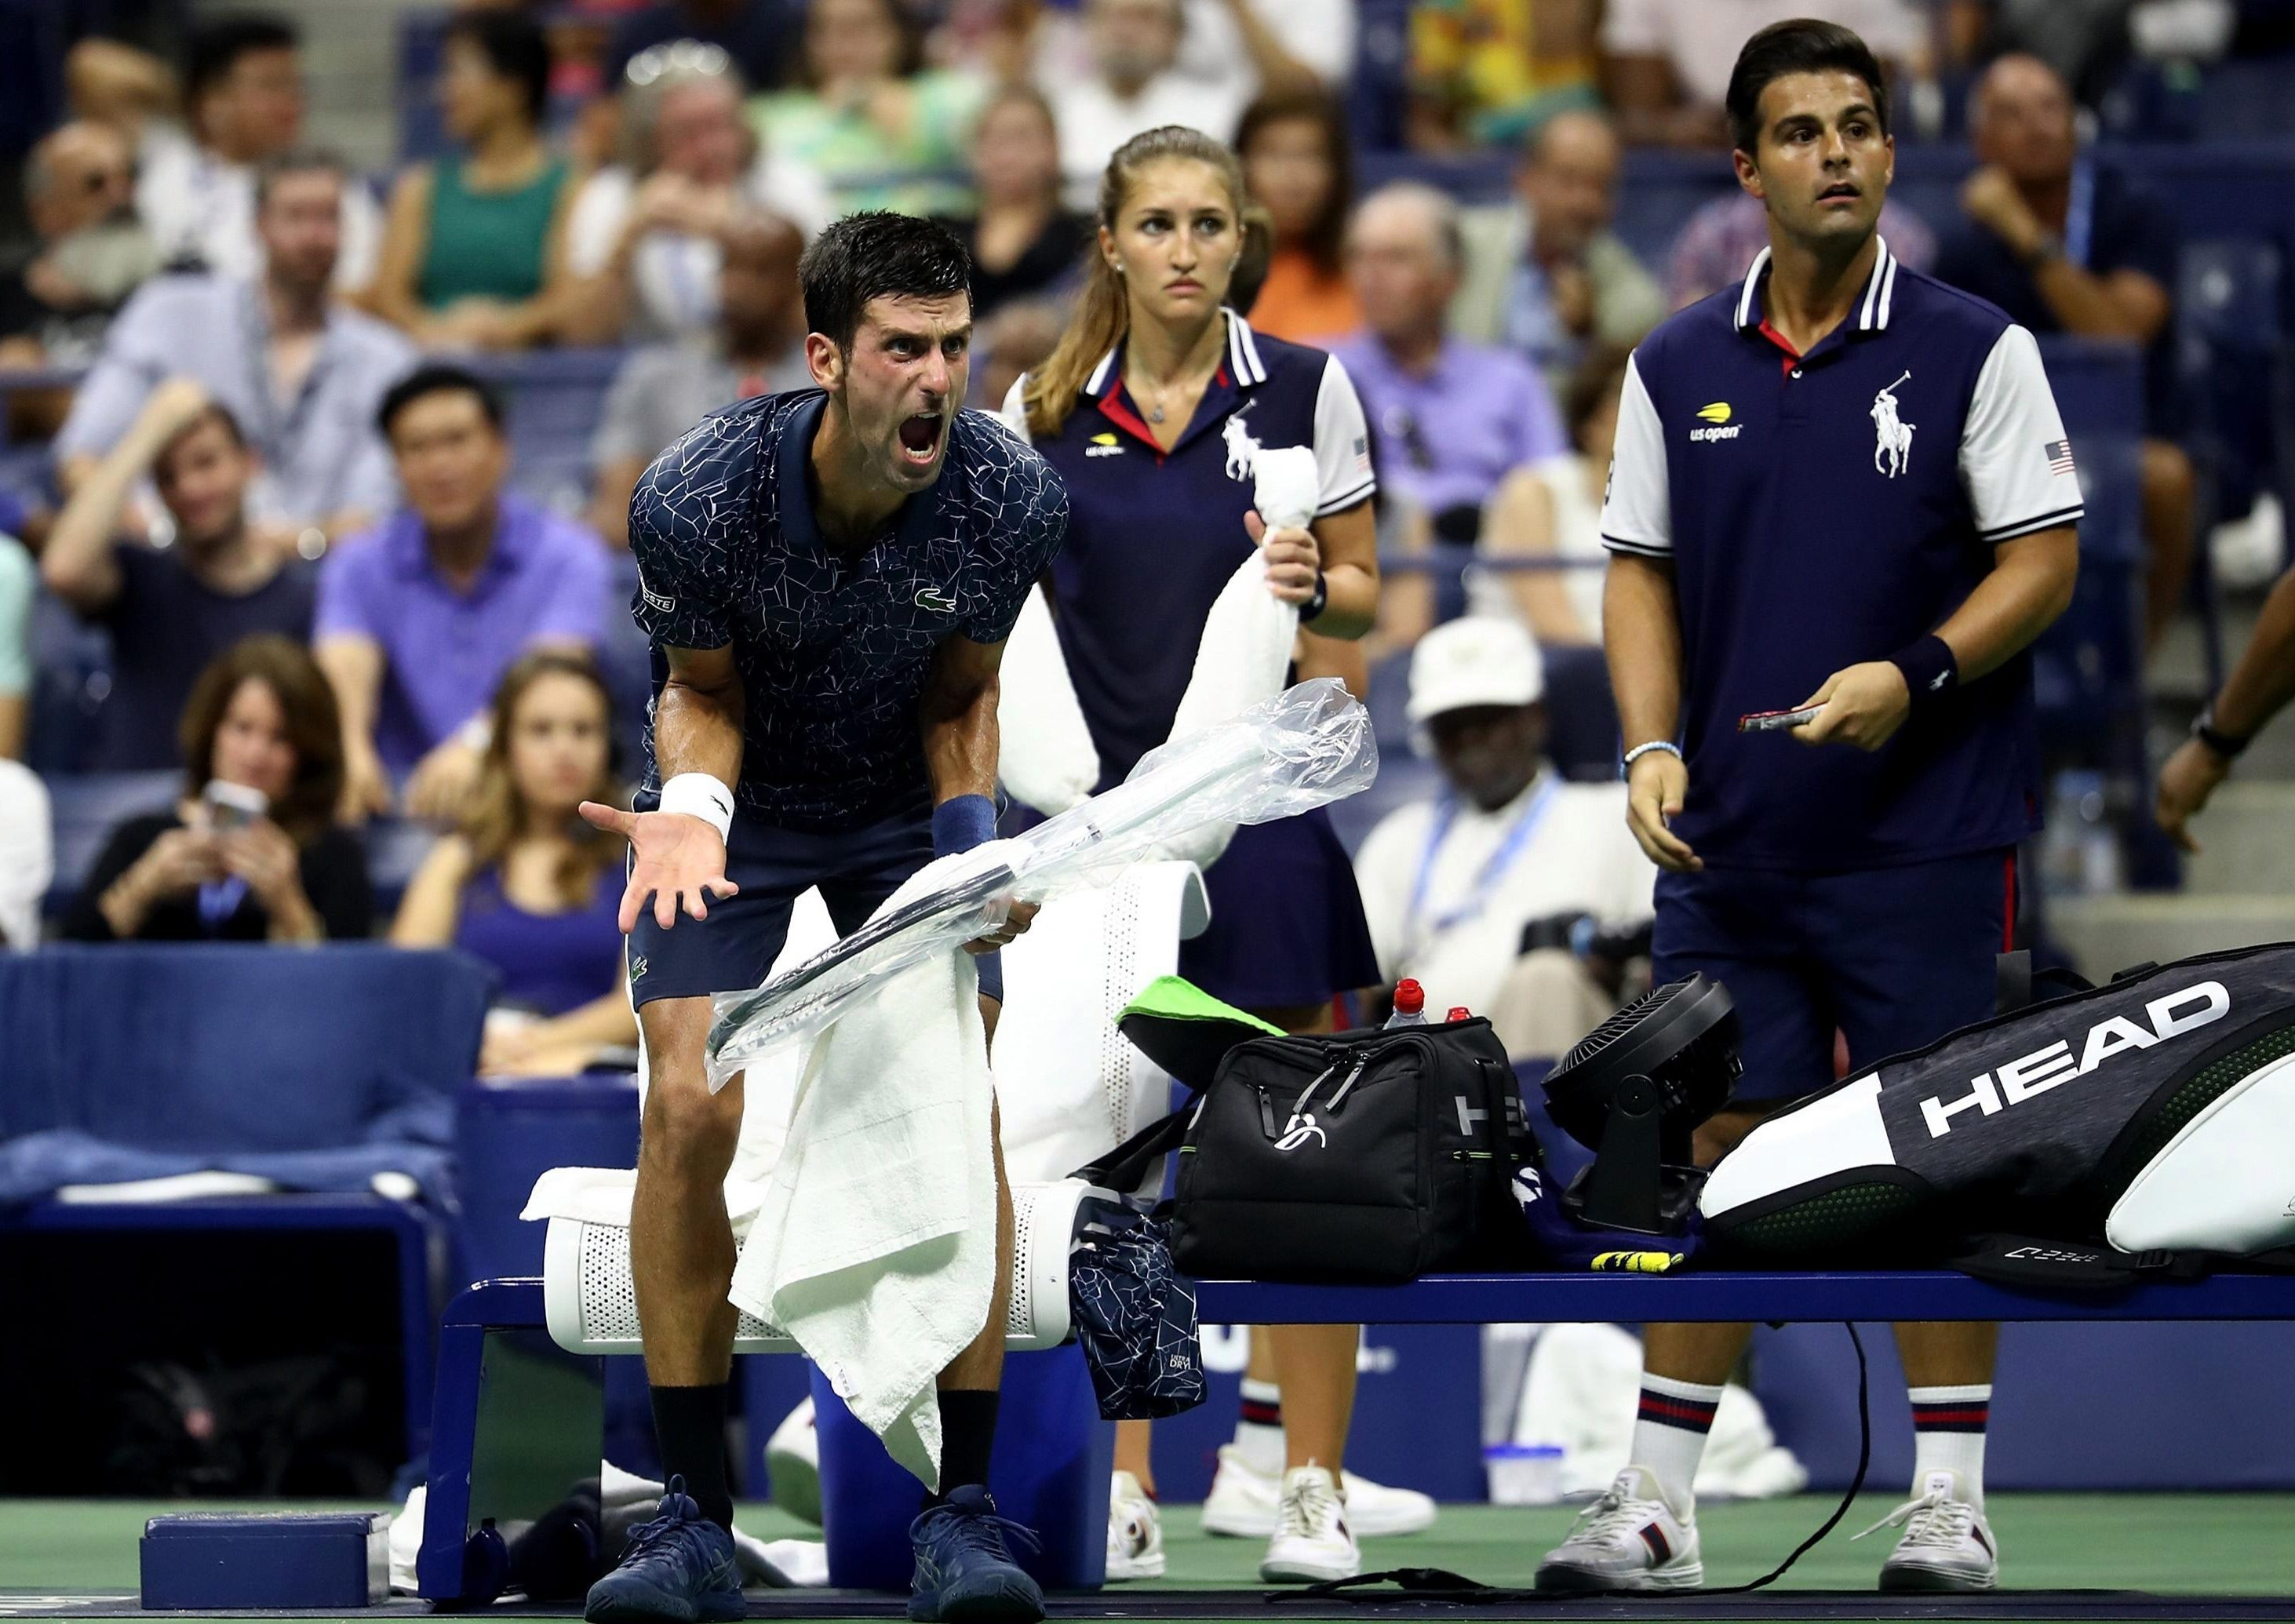 Novak Djokovic makes it clear he is unhappy with the conditions at Flushing Meadows